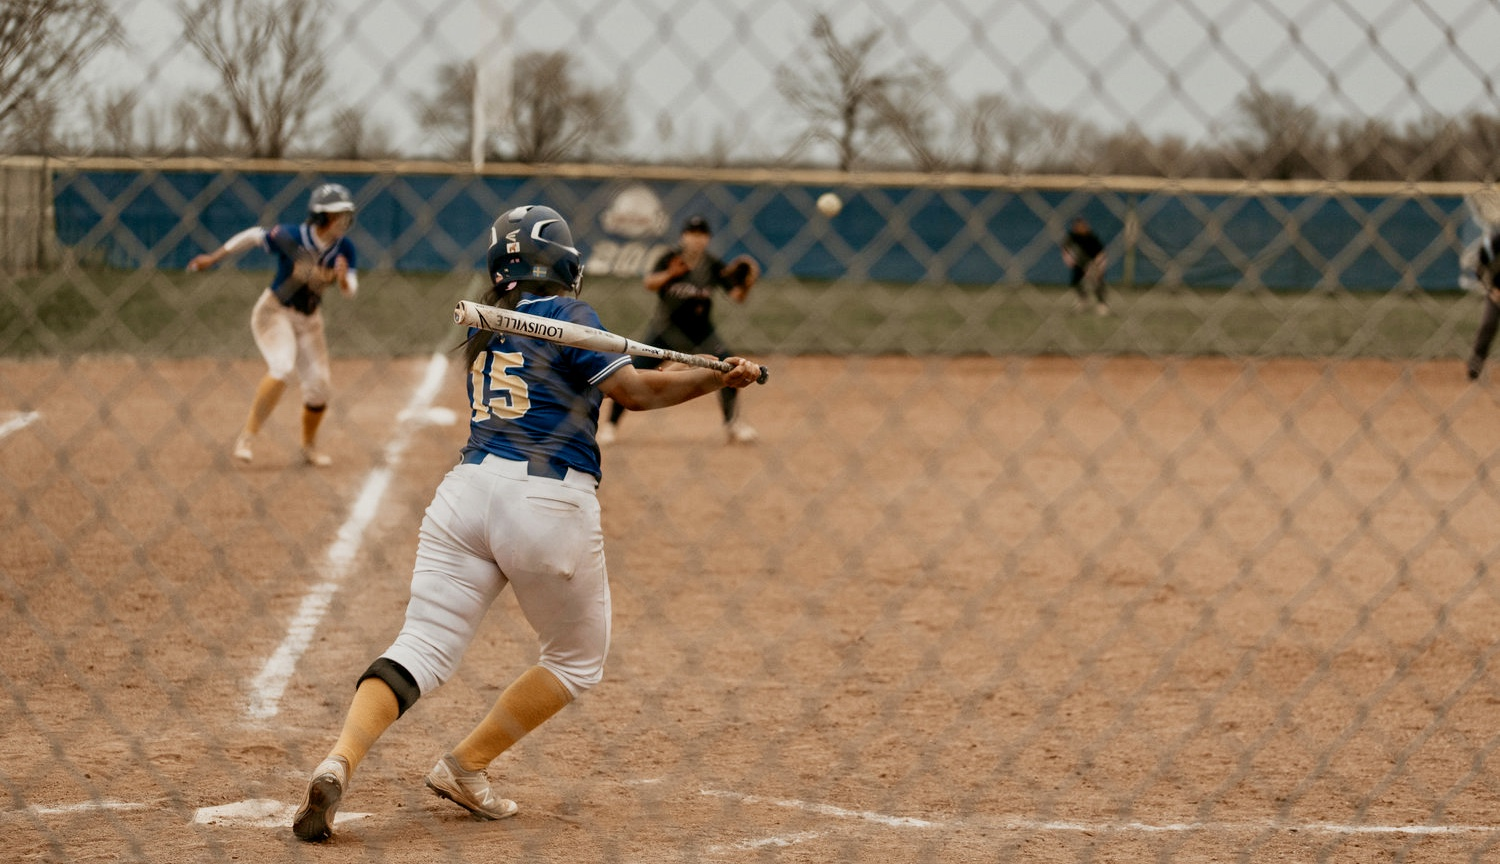 RBI TIME: With the bases loaded, Swedes' Rayleen Castro swats a line-drive single through the infield.